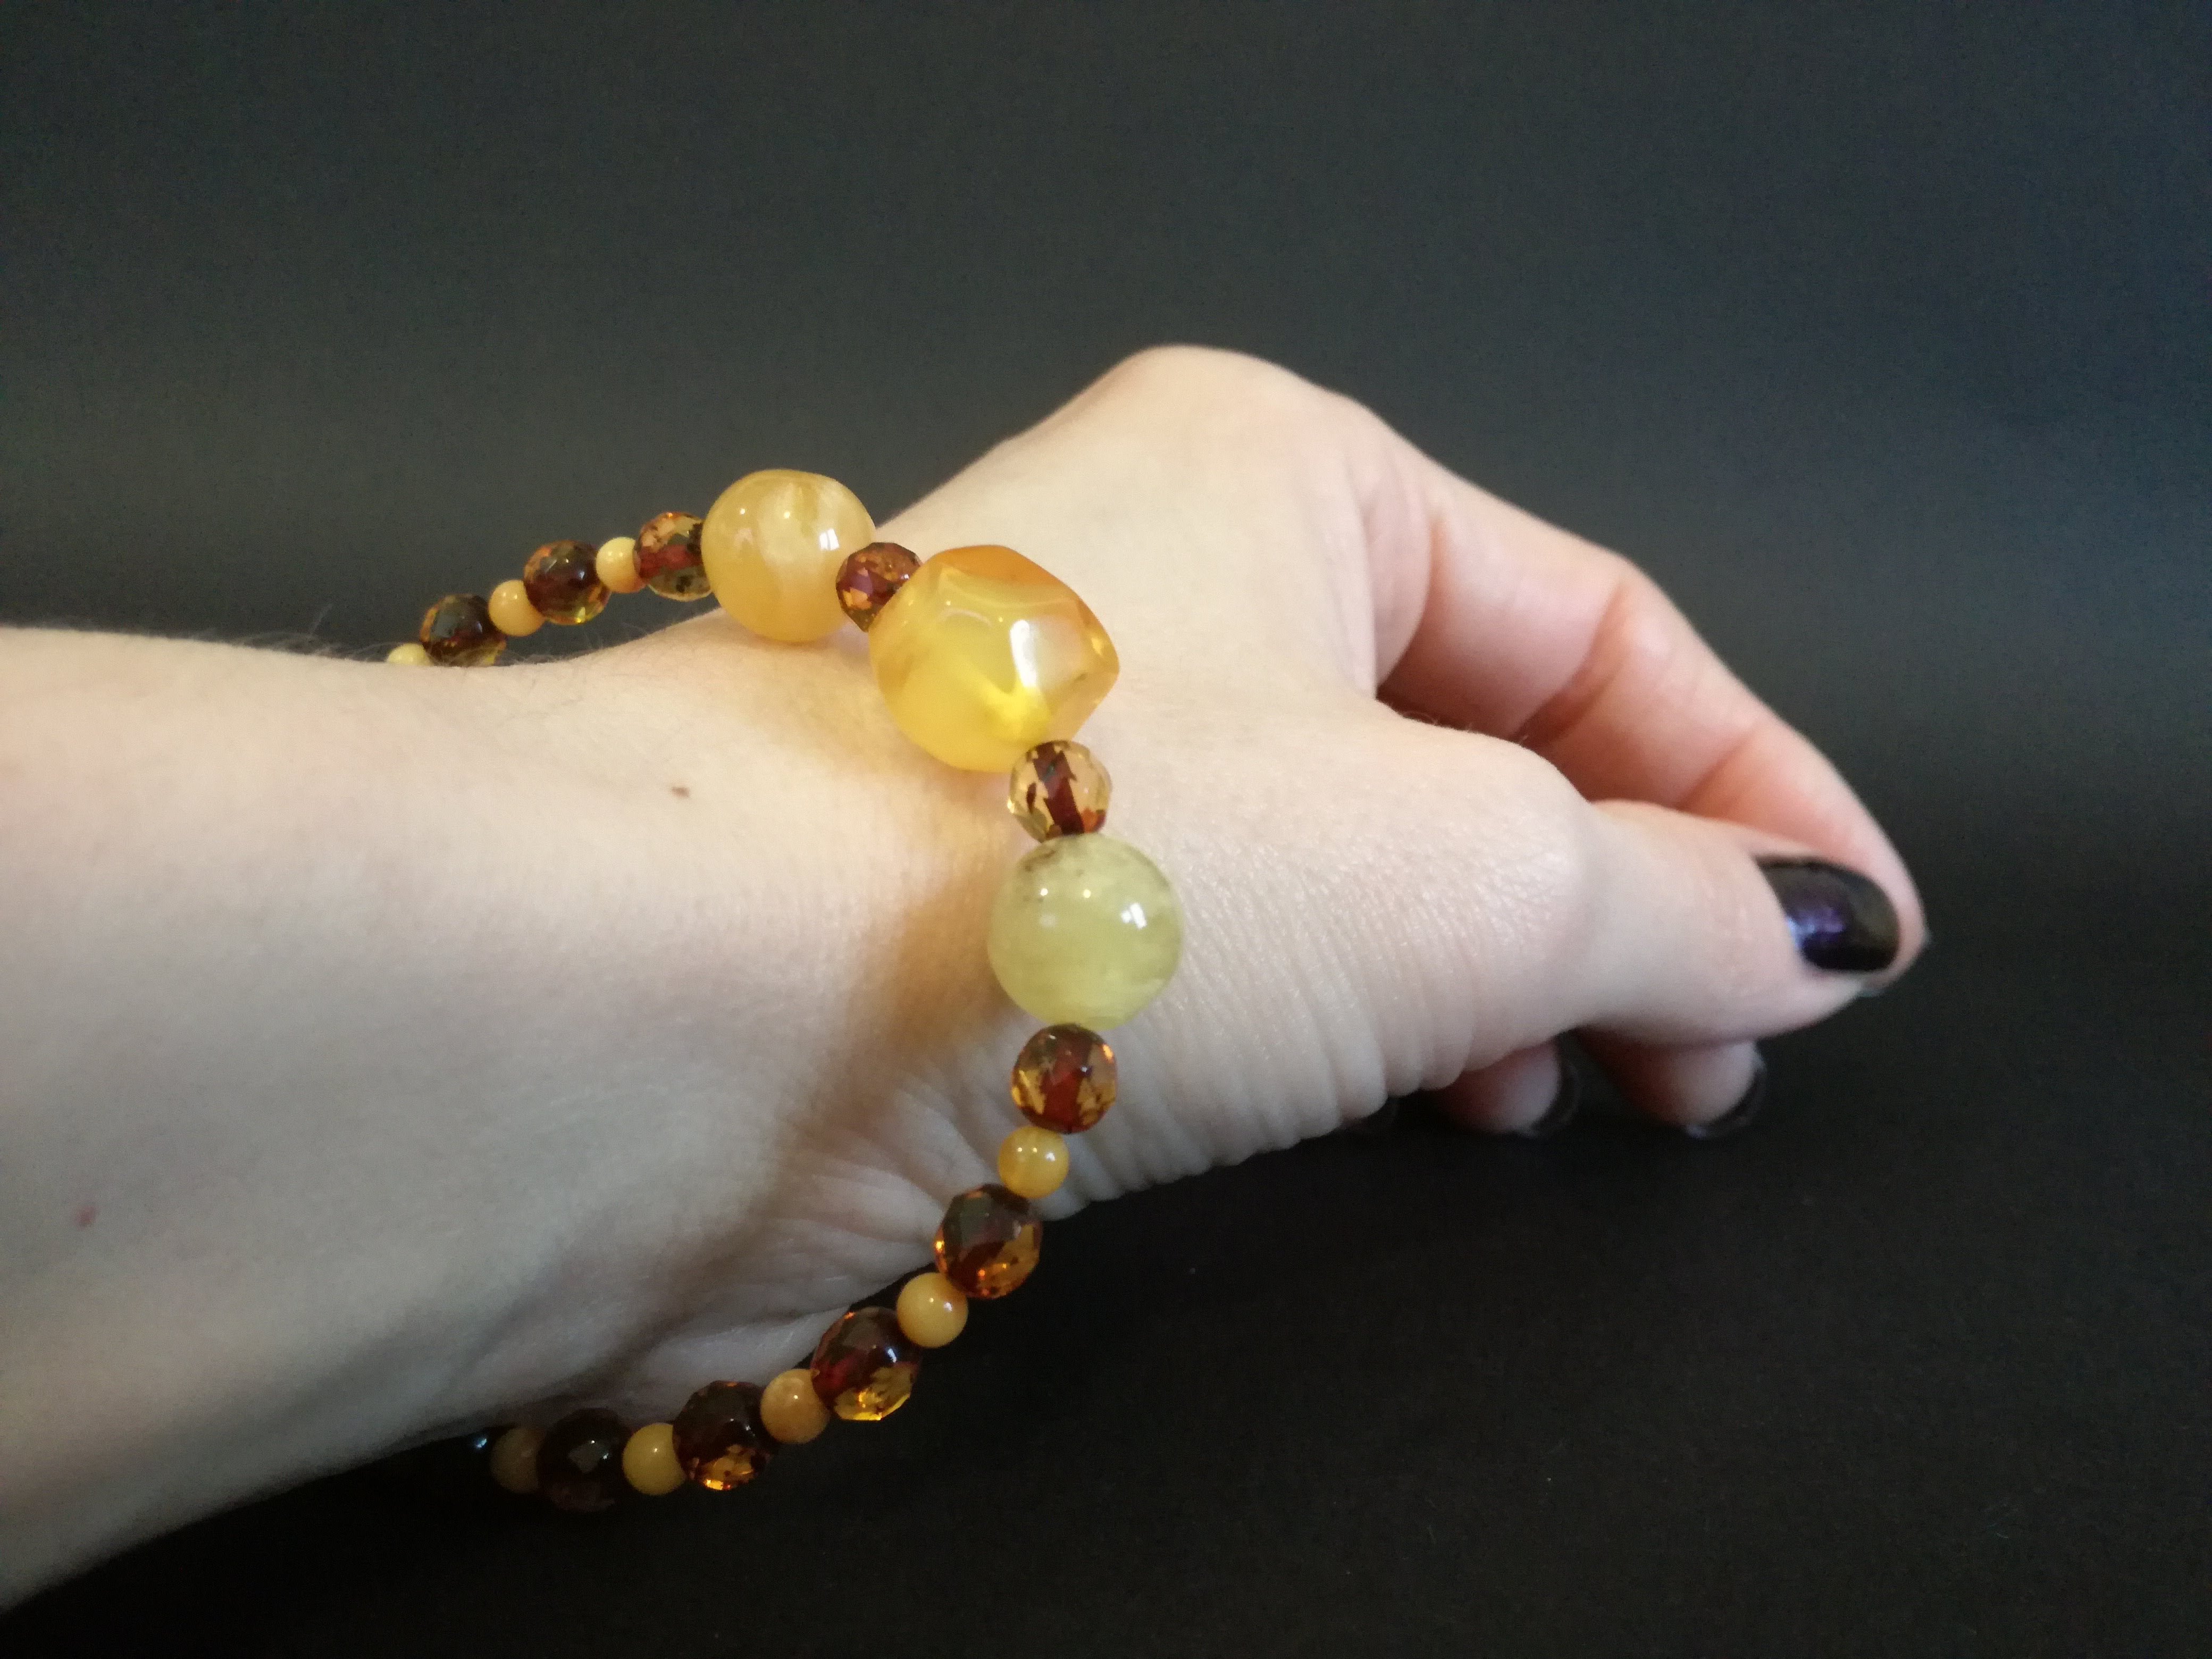 Genuine Handmade Amber Bracelet in Hand, Milky, Cognac, Small Size, faceted, Small Round Beads, Healing properties, For Her, Nursing Mums